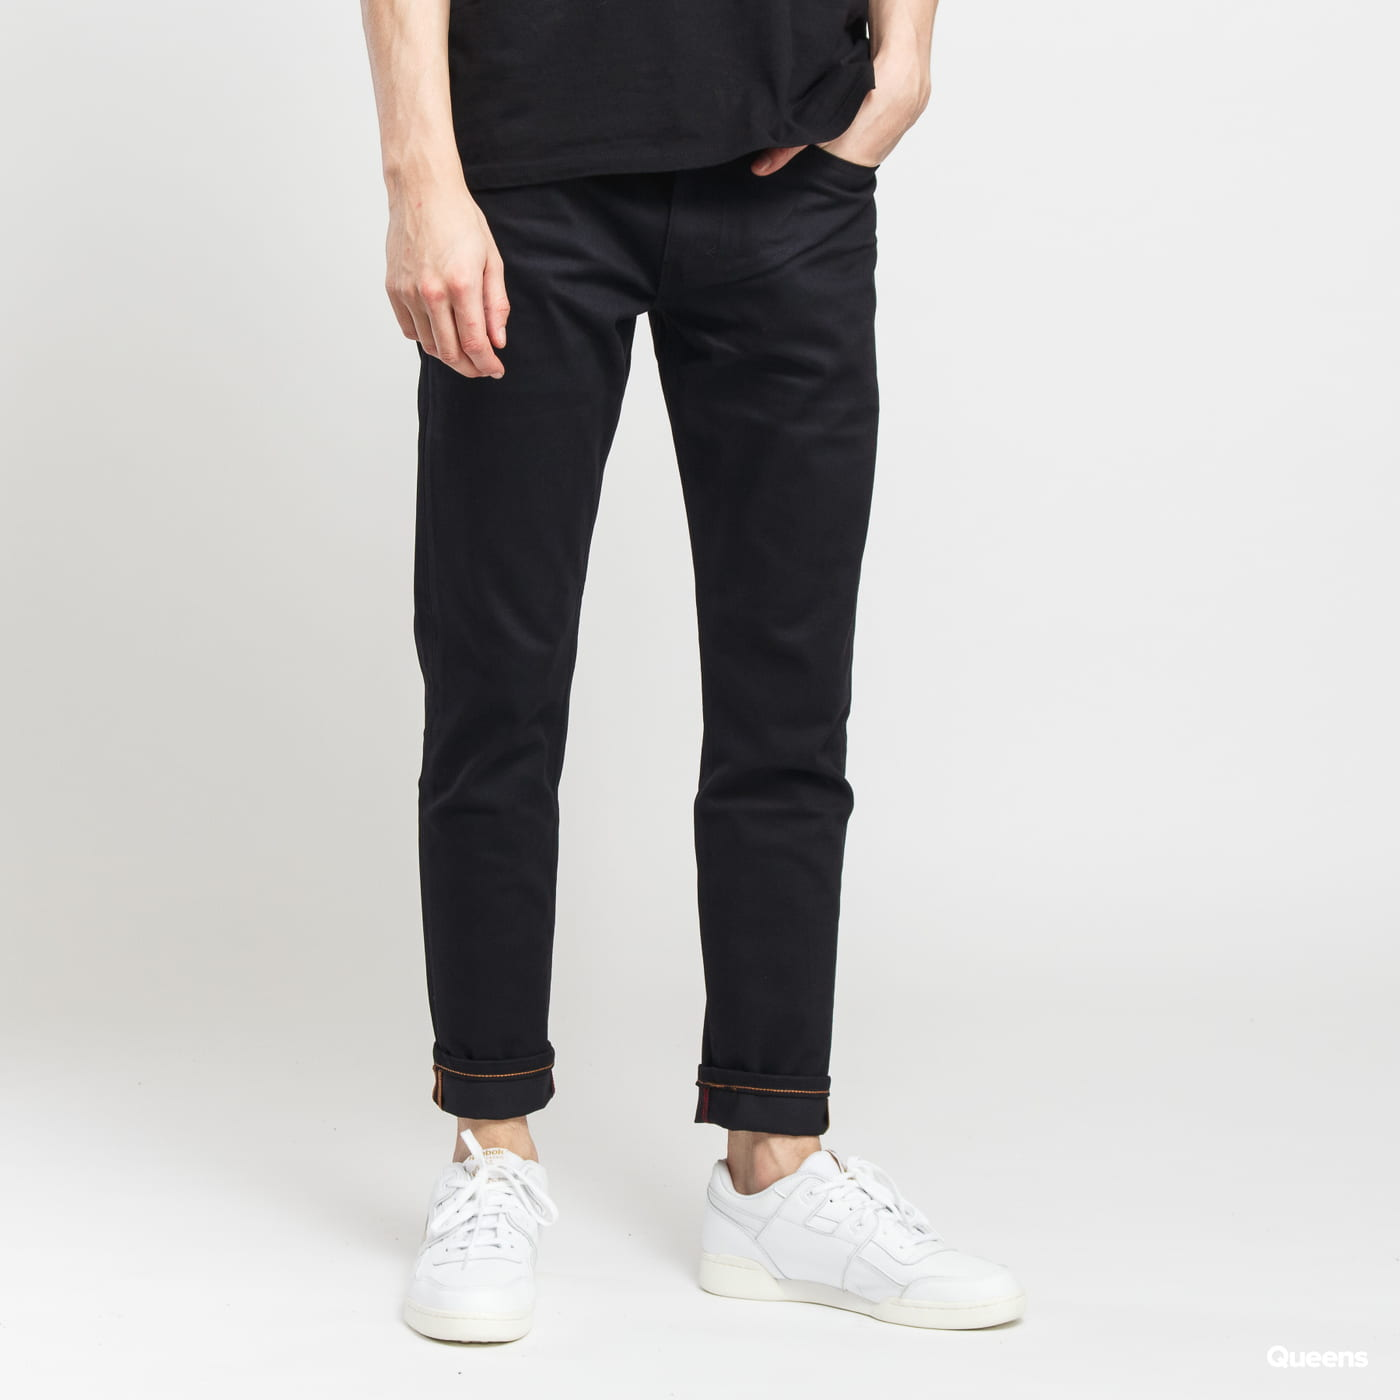 Levi's ® Skate 512 Slim 5 Pocket SE caviar bull denim